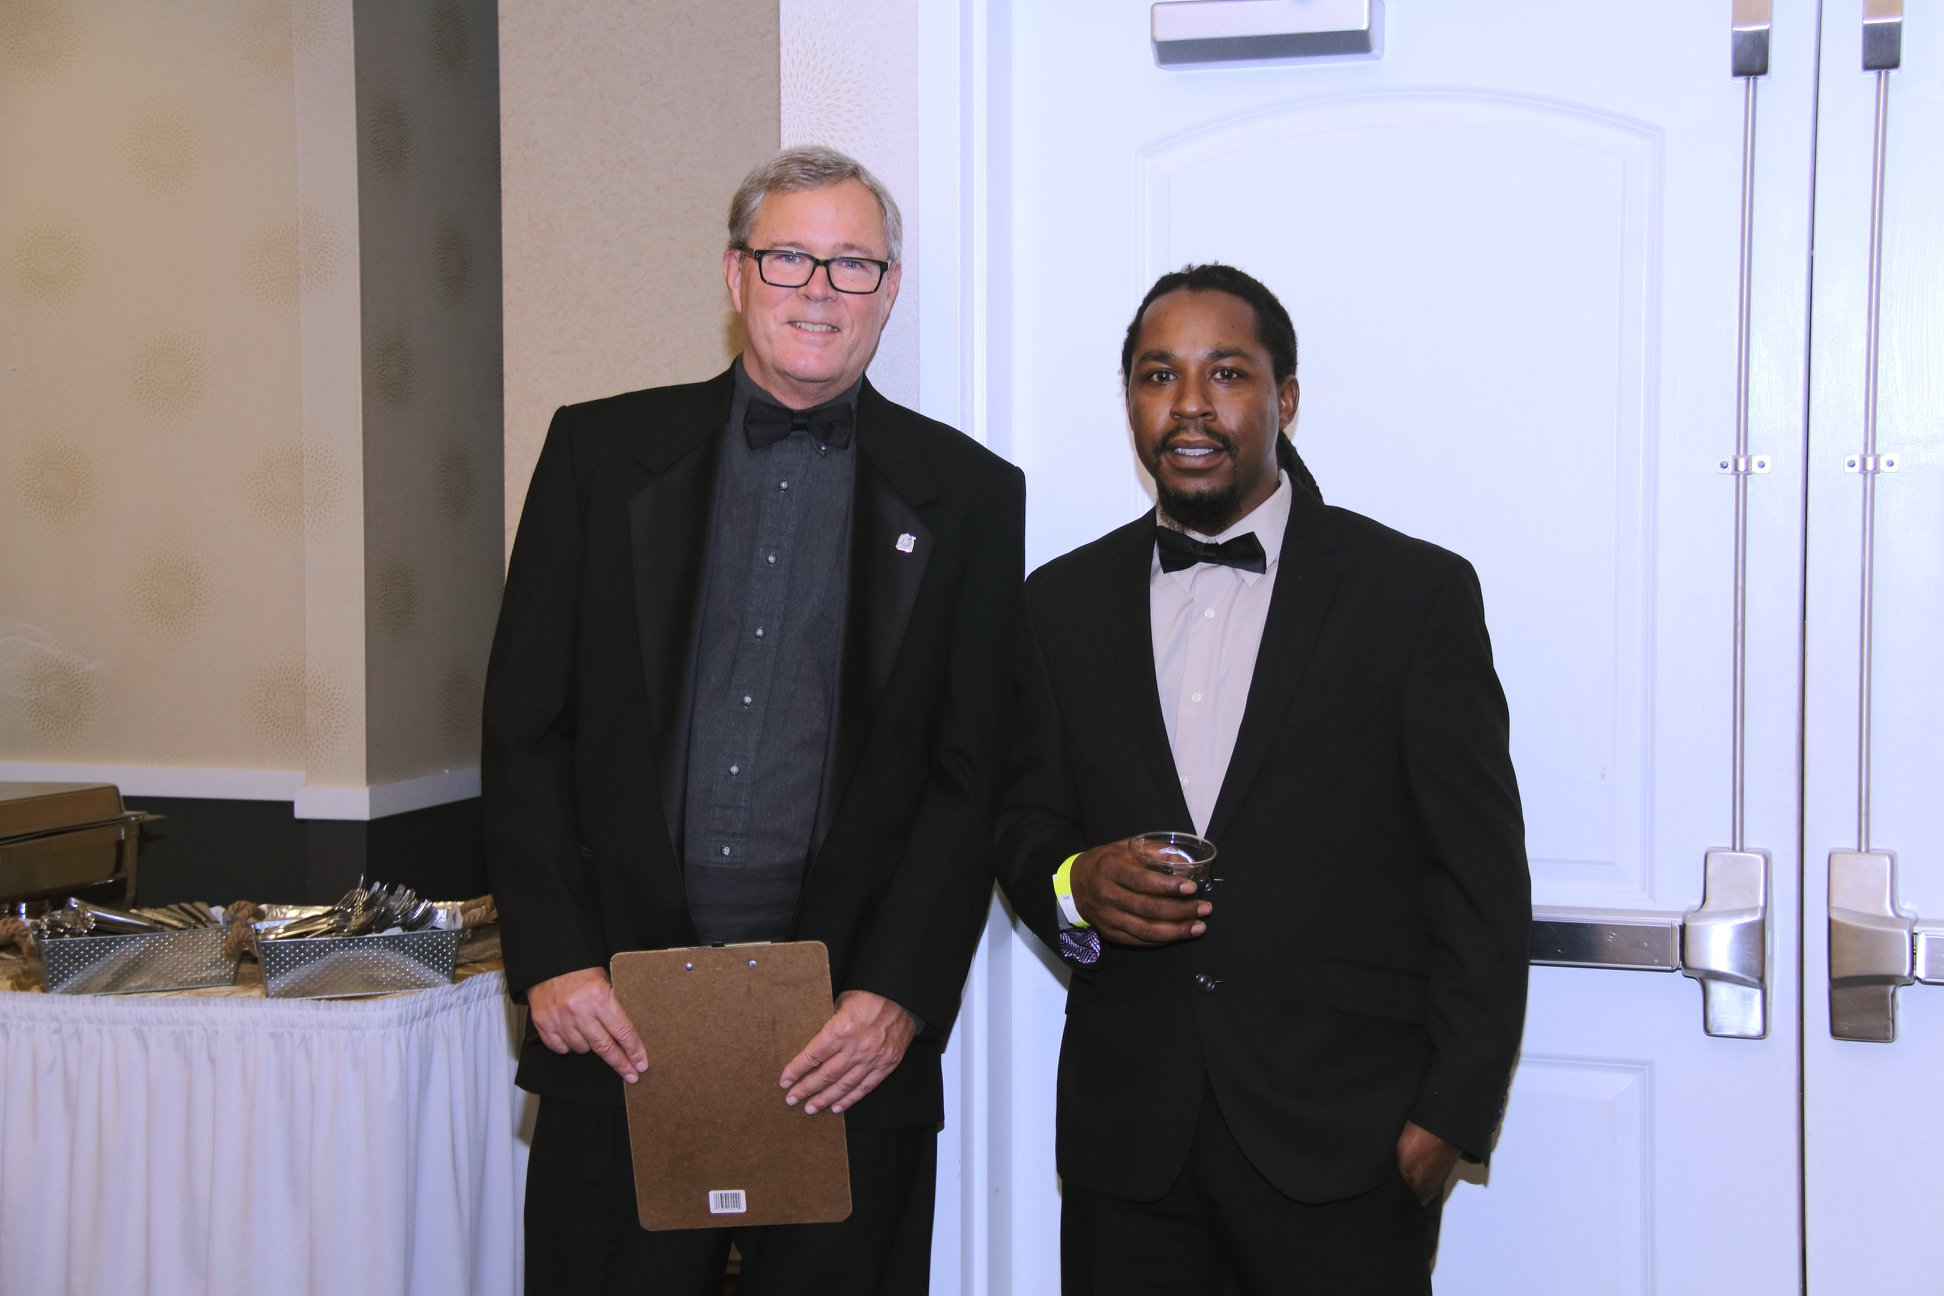 Bill Scheurer, OEP executive director, with John Crawford and Damonte Martin at the third annual awards dinner for the Black Lives Matter Lake County (IL) chapter.